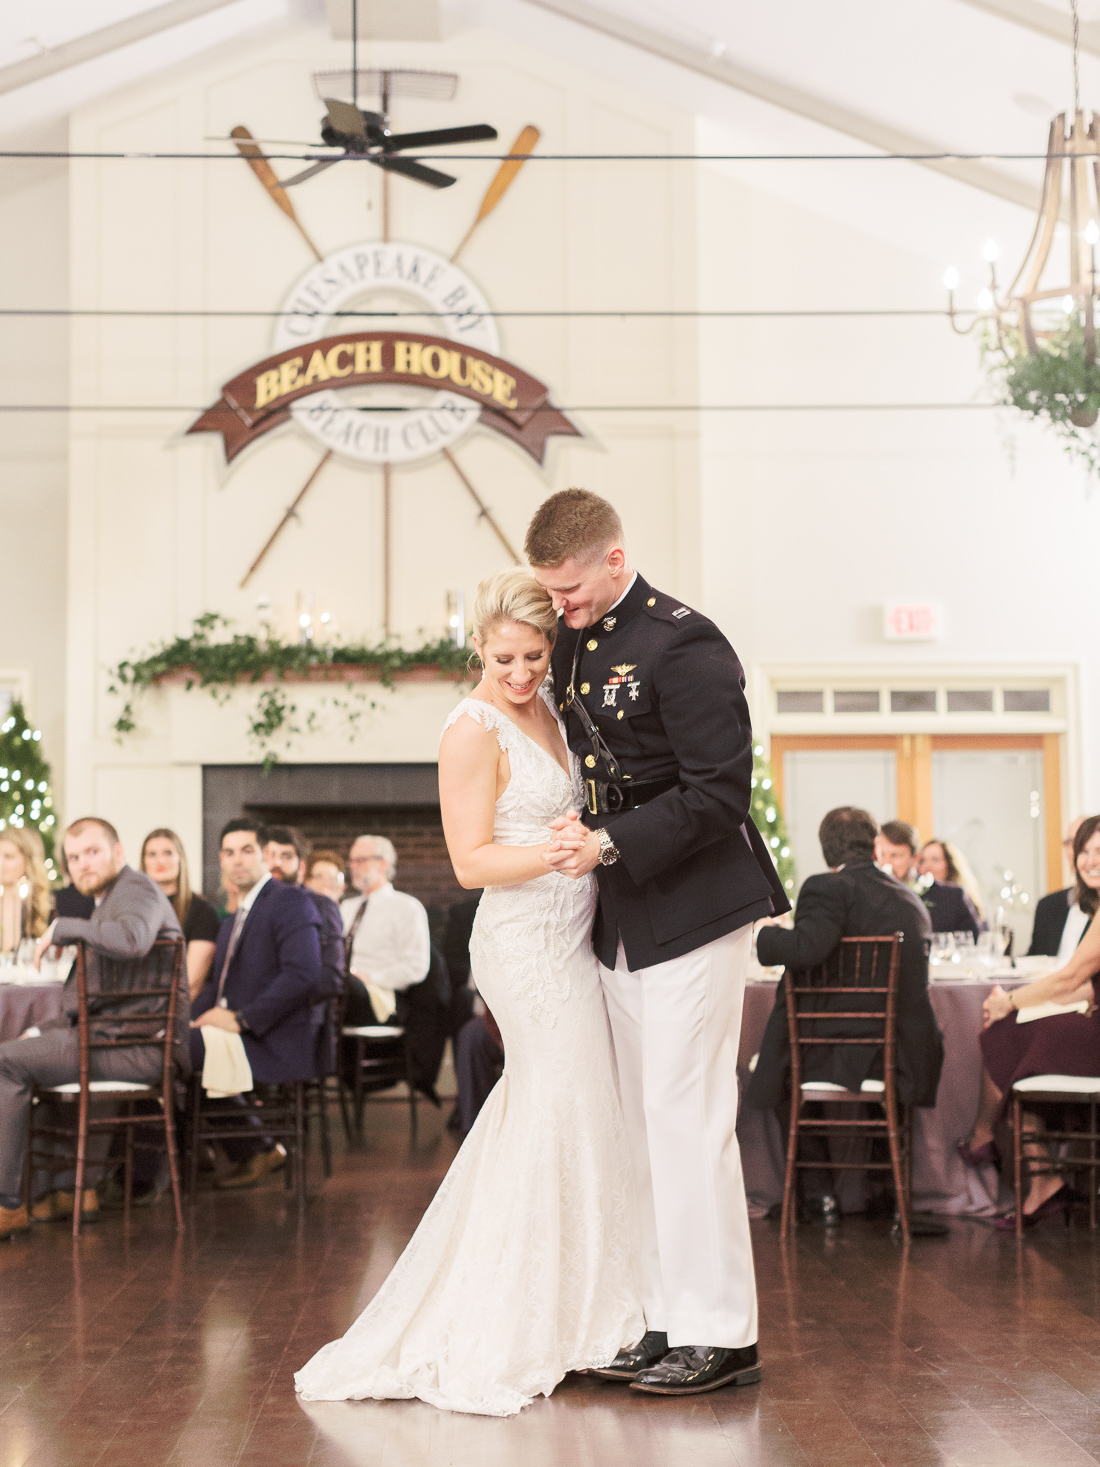 Michelle-whitley-photography-reception-first-dance